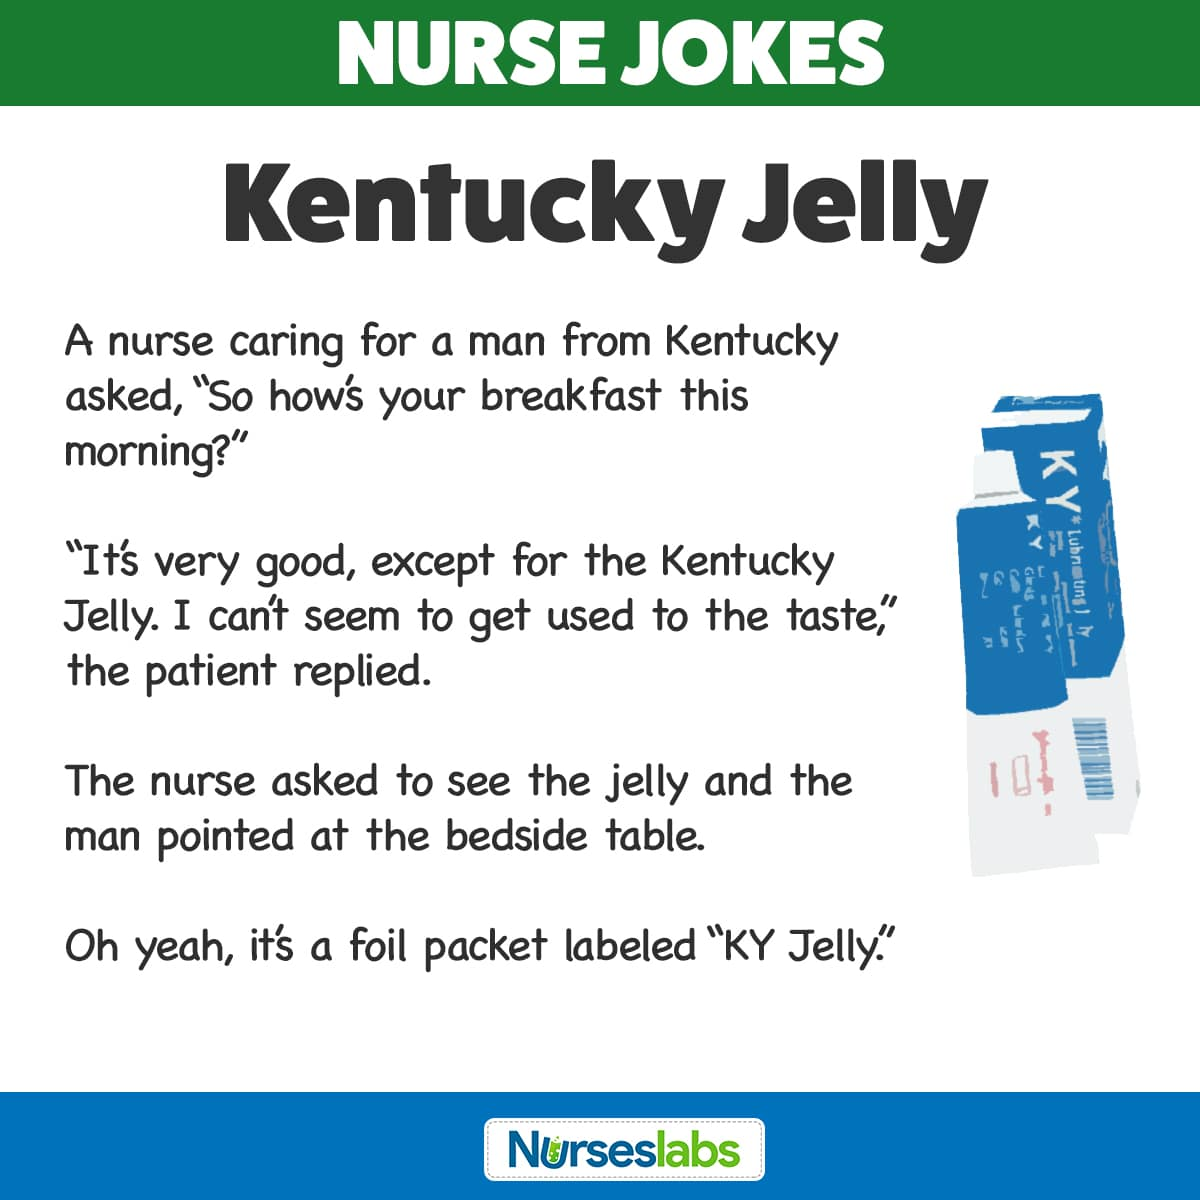 20 Nurse Jokes So Funny They'll Make You Laugh out Loud - Nurseslabs